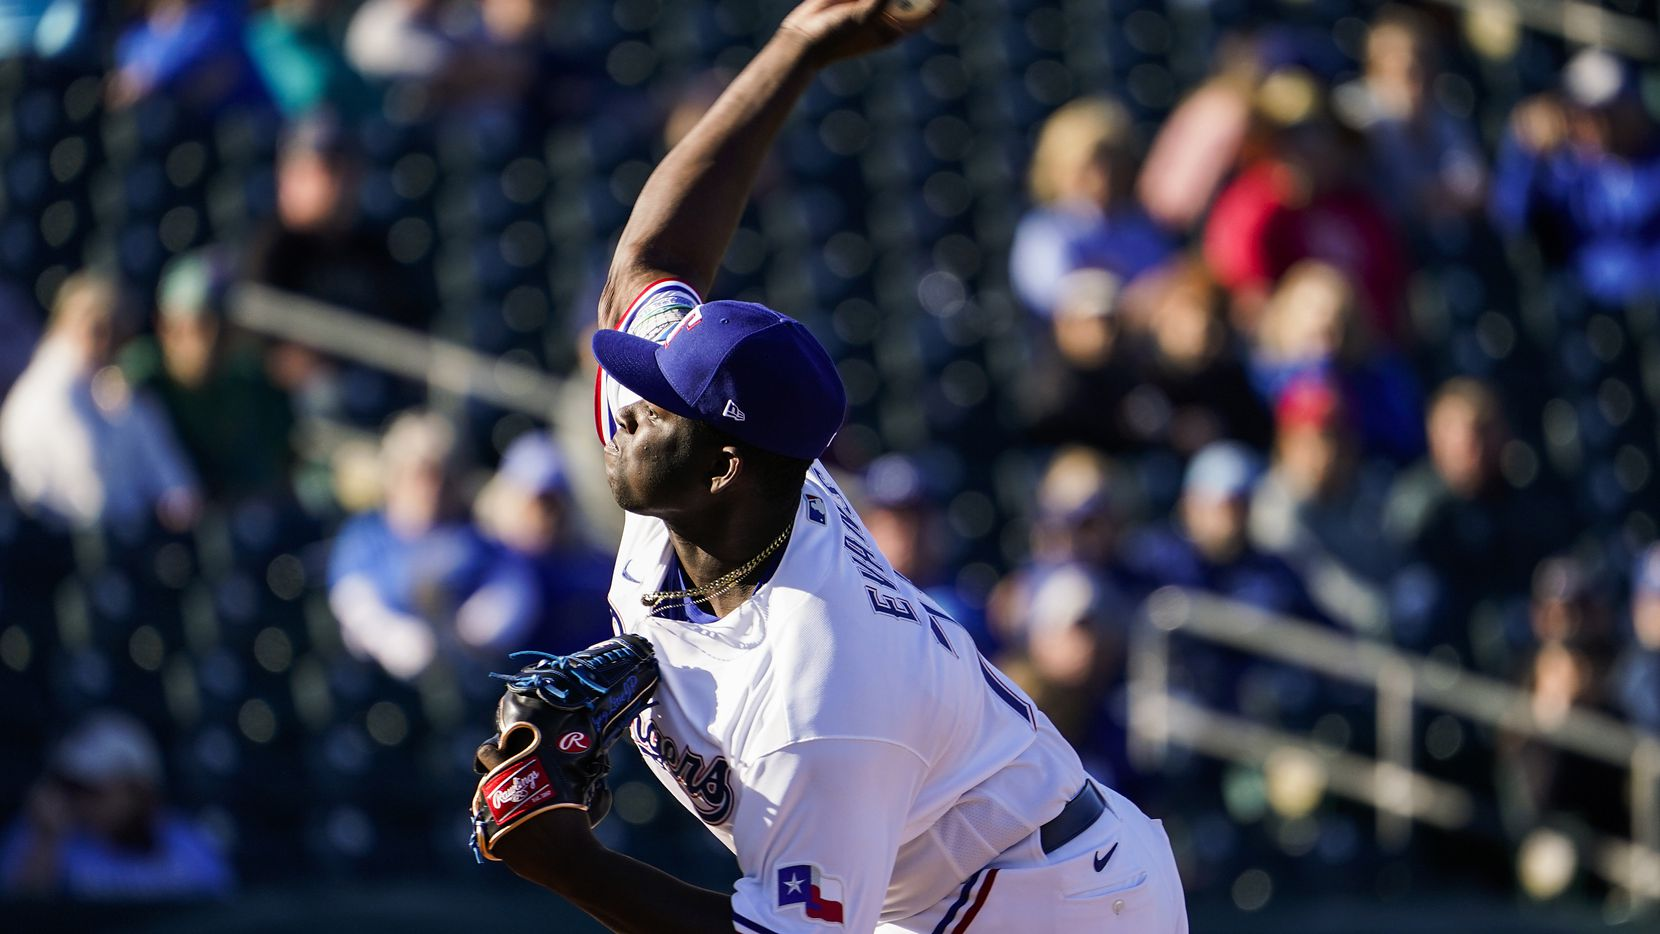 Rangers pitcher Demarcus Evans is pictured during the ninth inning of a spring training game against the Kansas City Royals at Surprise Stadium on Tuesday, Feb. 25, 2020, in Surprise, Ariz.